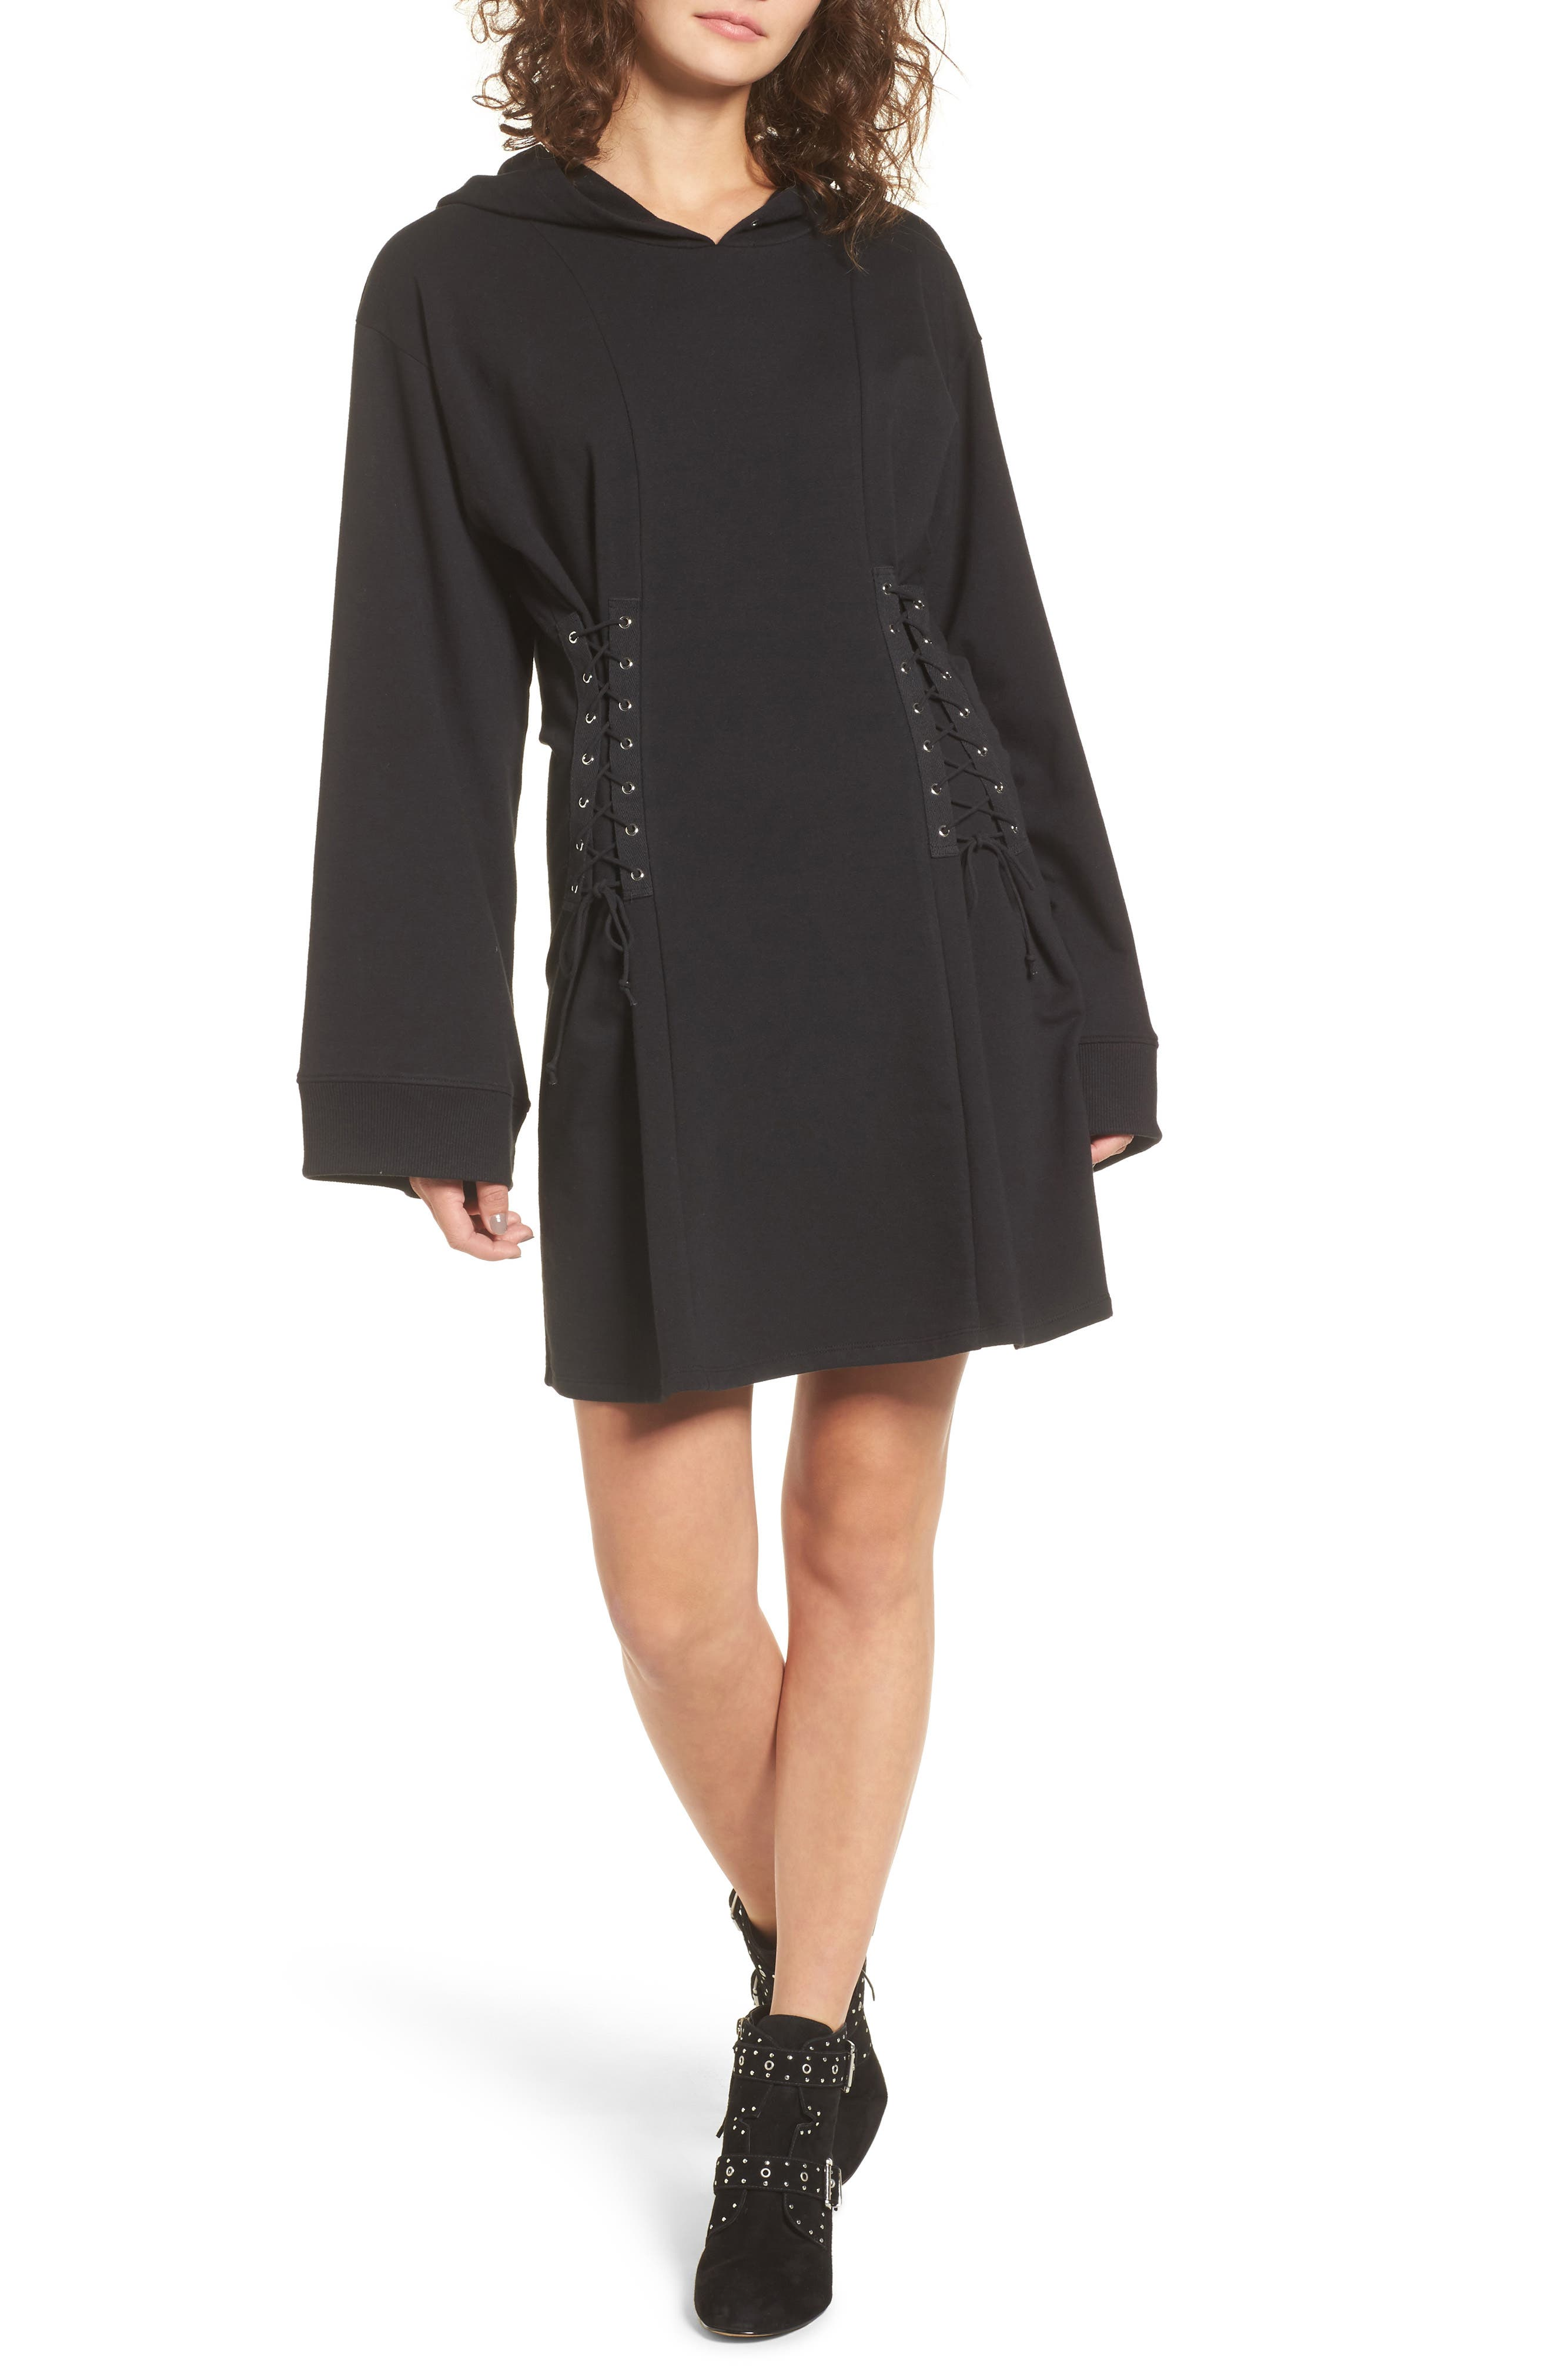 Alternate Image 1 Selected - BP. Corset Hoodie Sweatshirt Dress